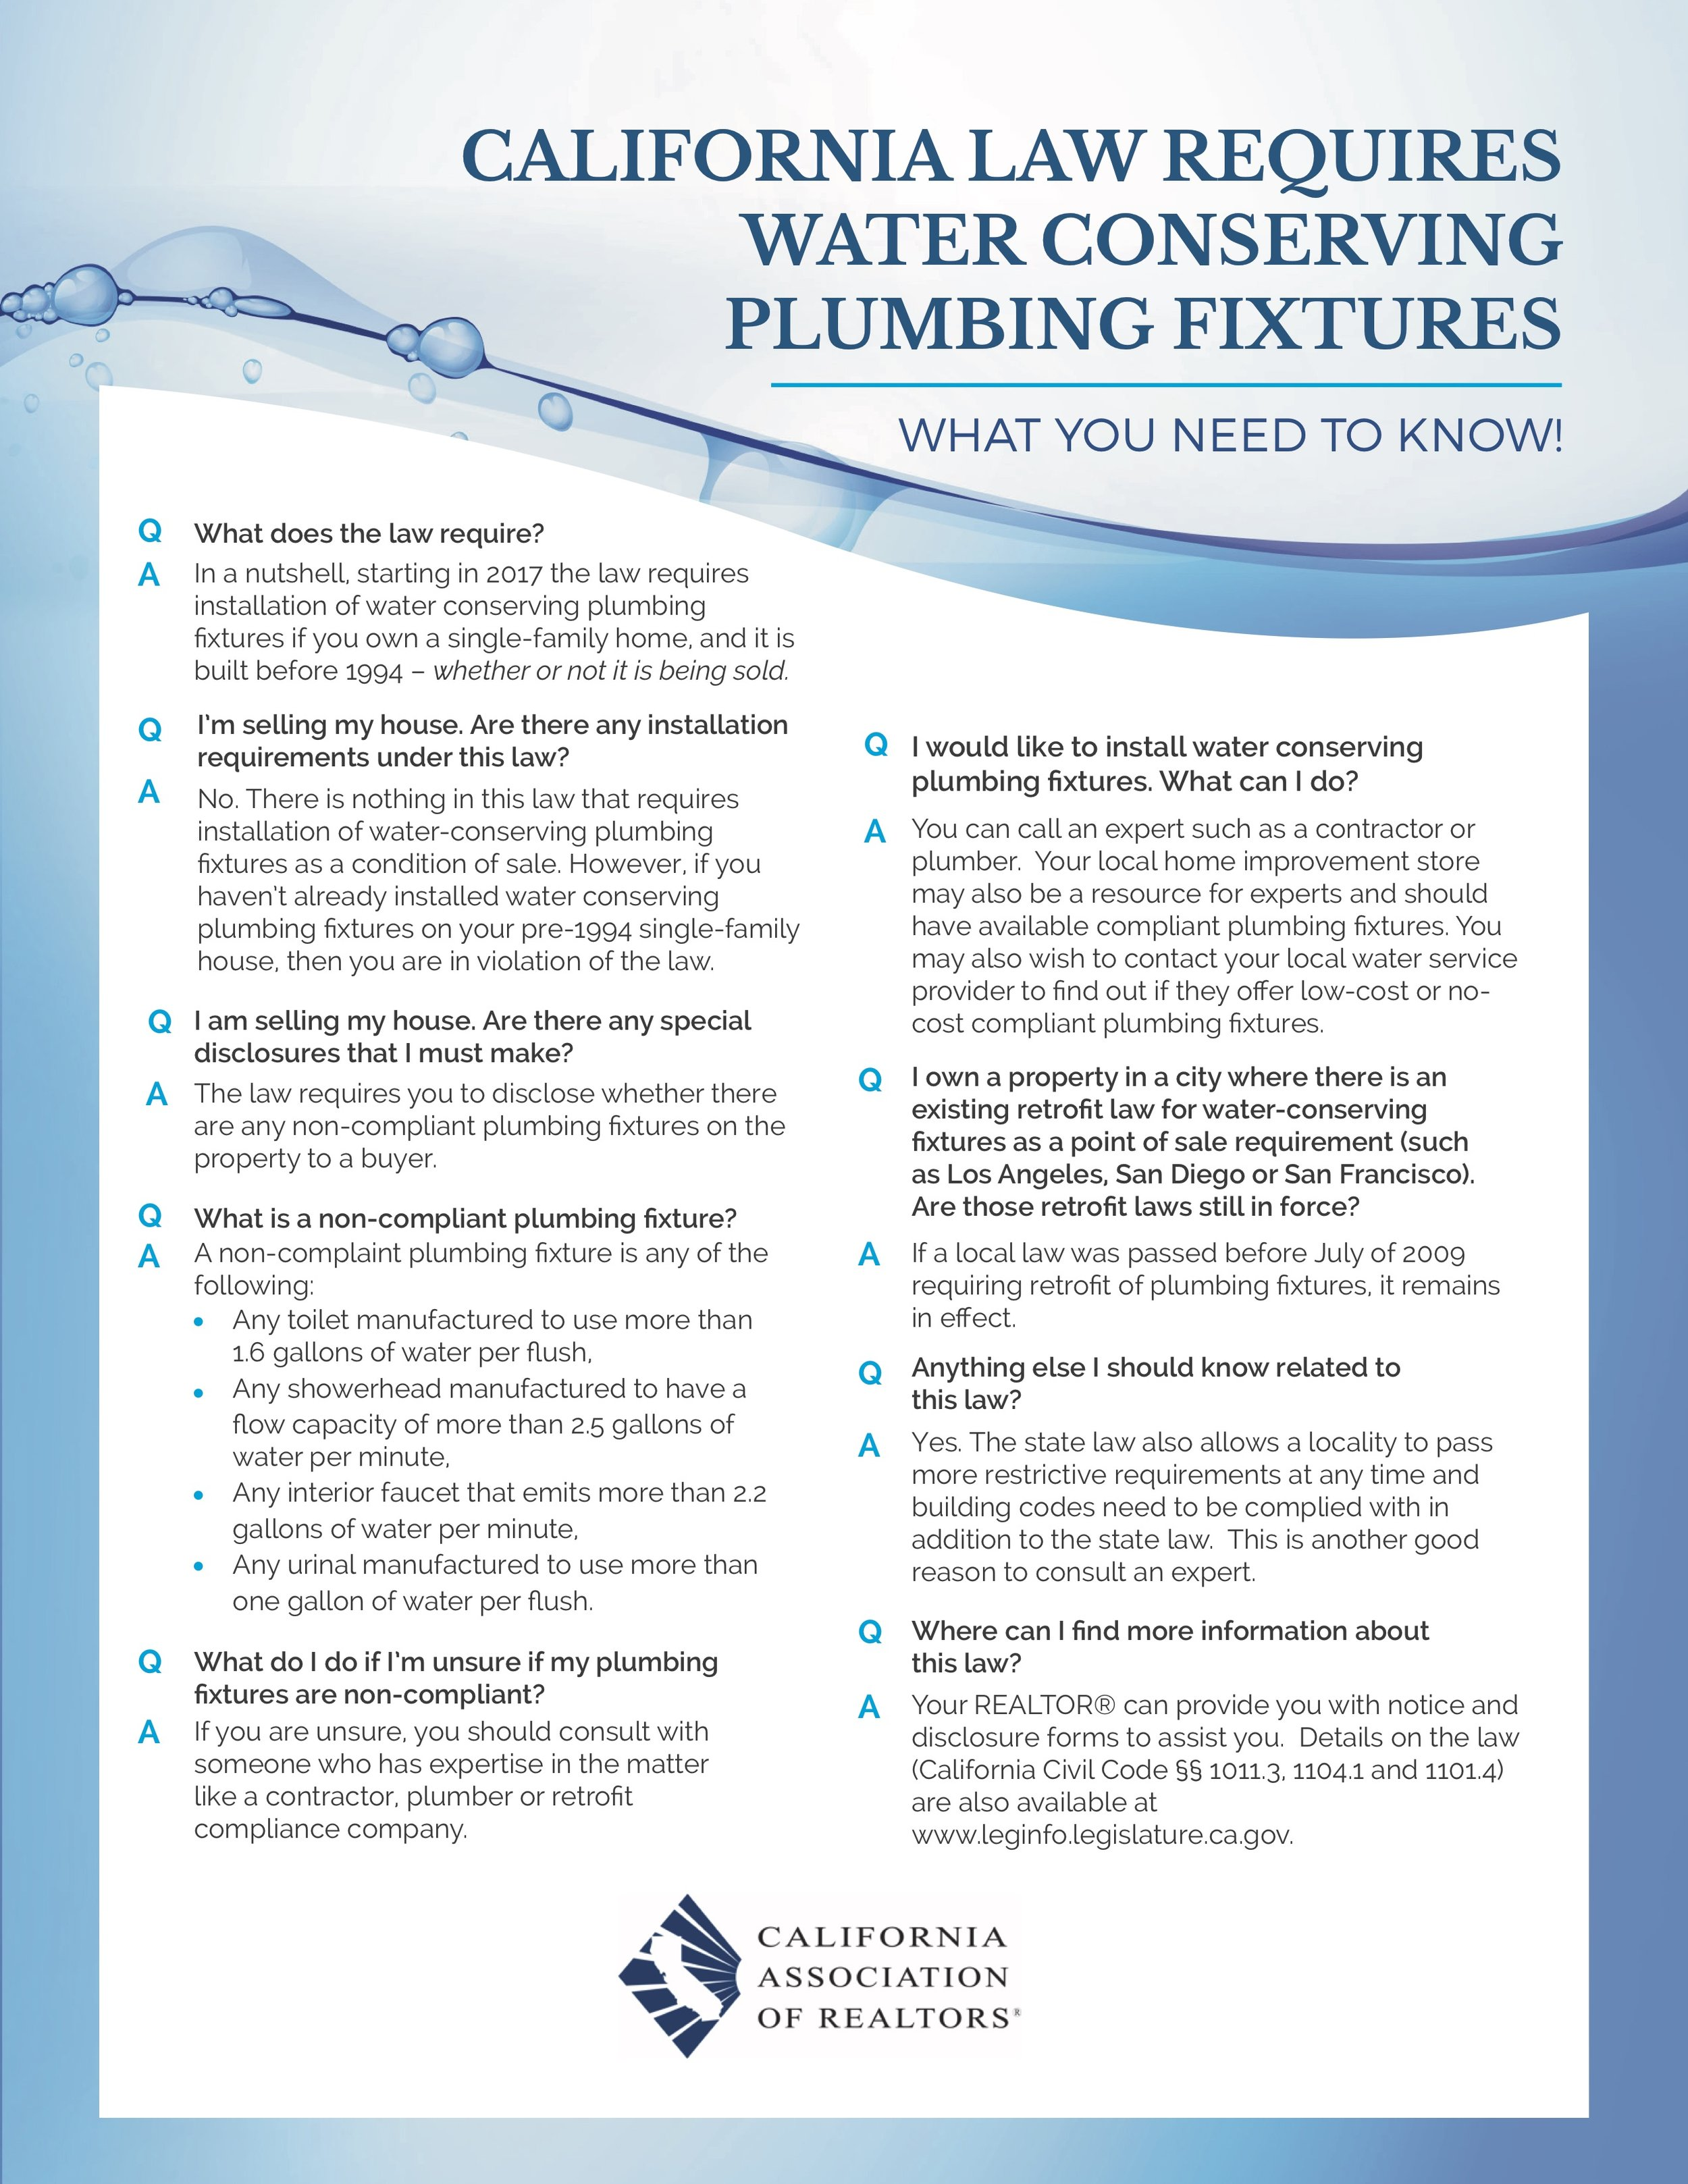 Water Conserving Plumbing Fixtures.jpg